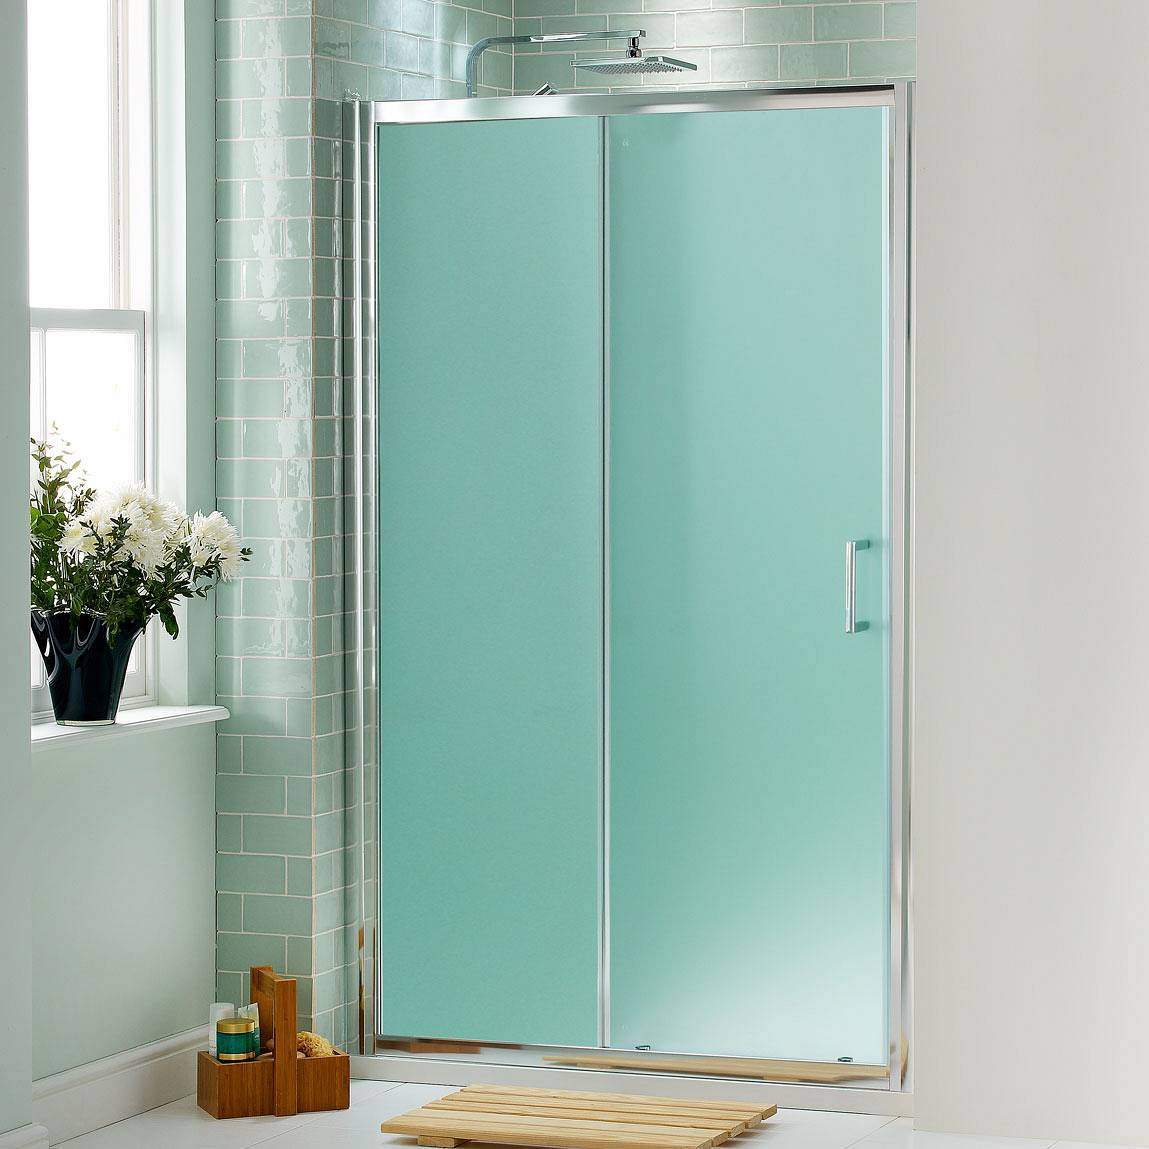 Bathroom Design Toilet Door : Creative glass shower doors designs for bathrooms